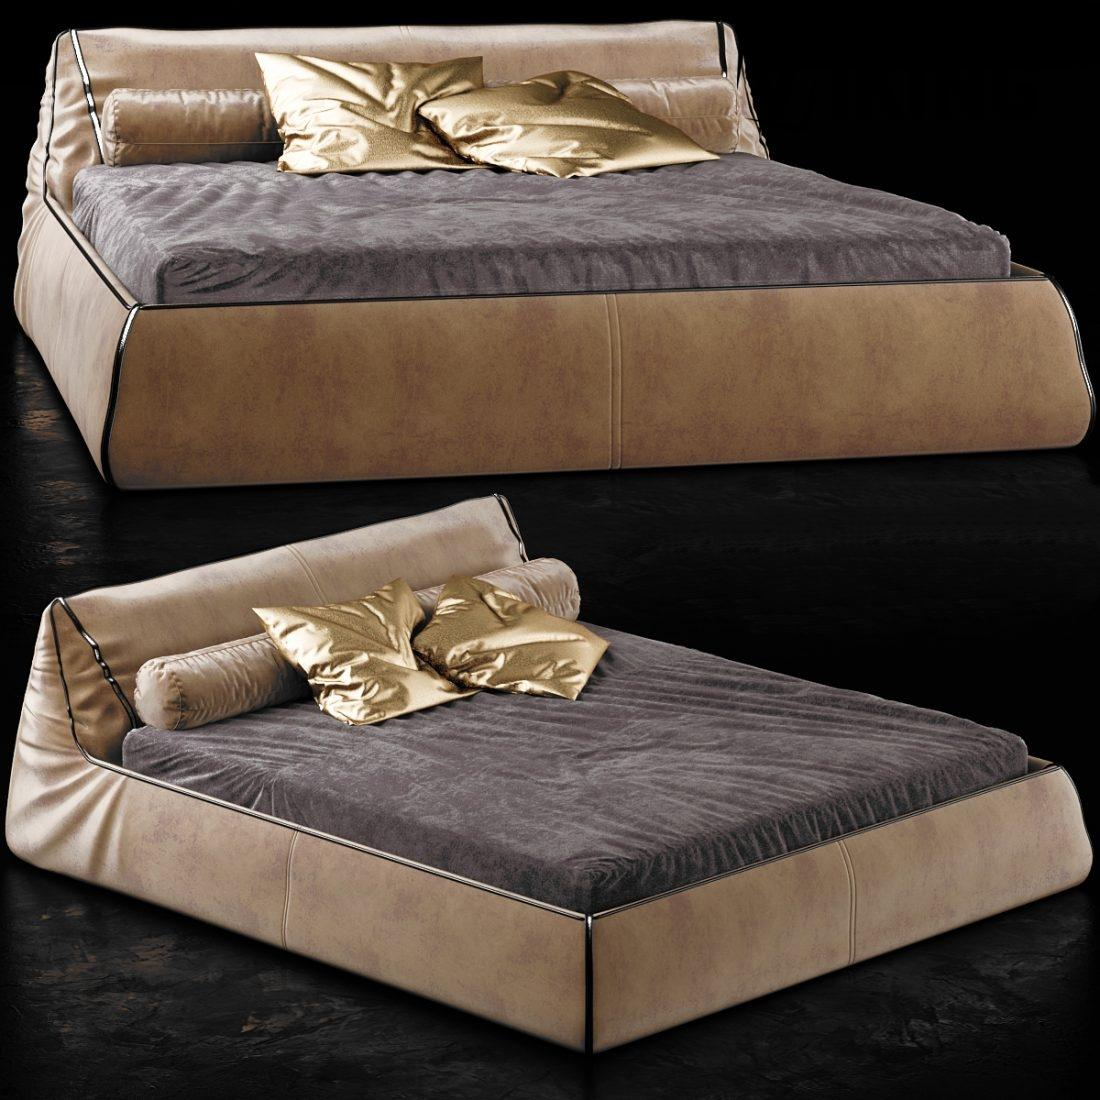 3D Gamma Suite Night Bed Model 154 Free Download 1 scaled 1